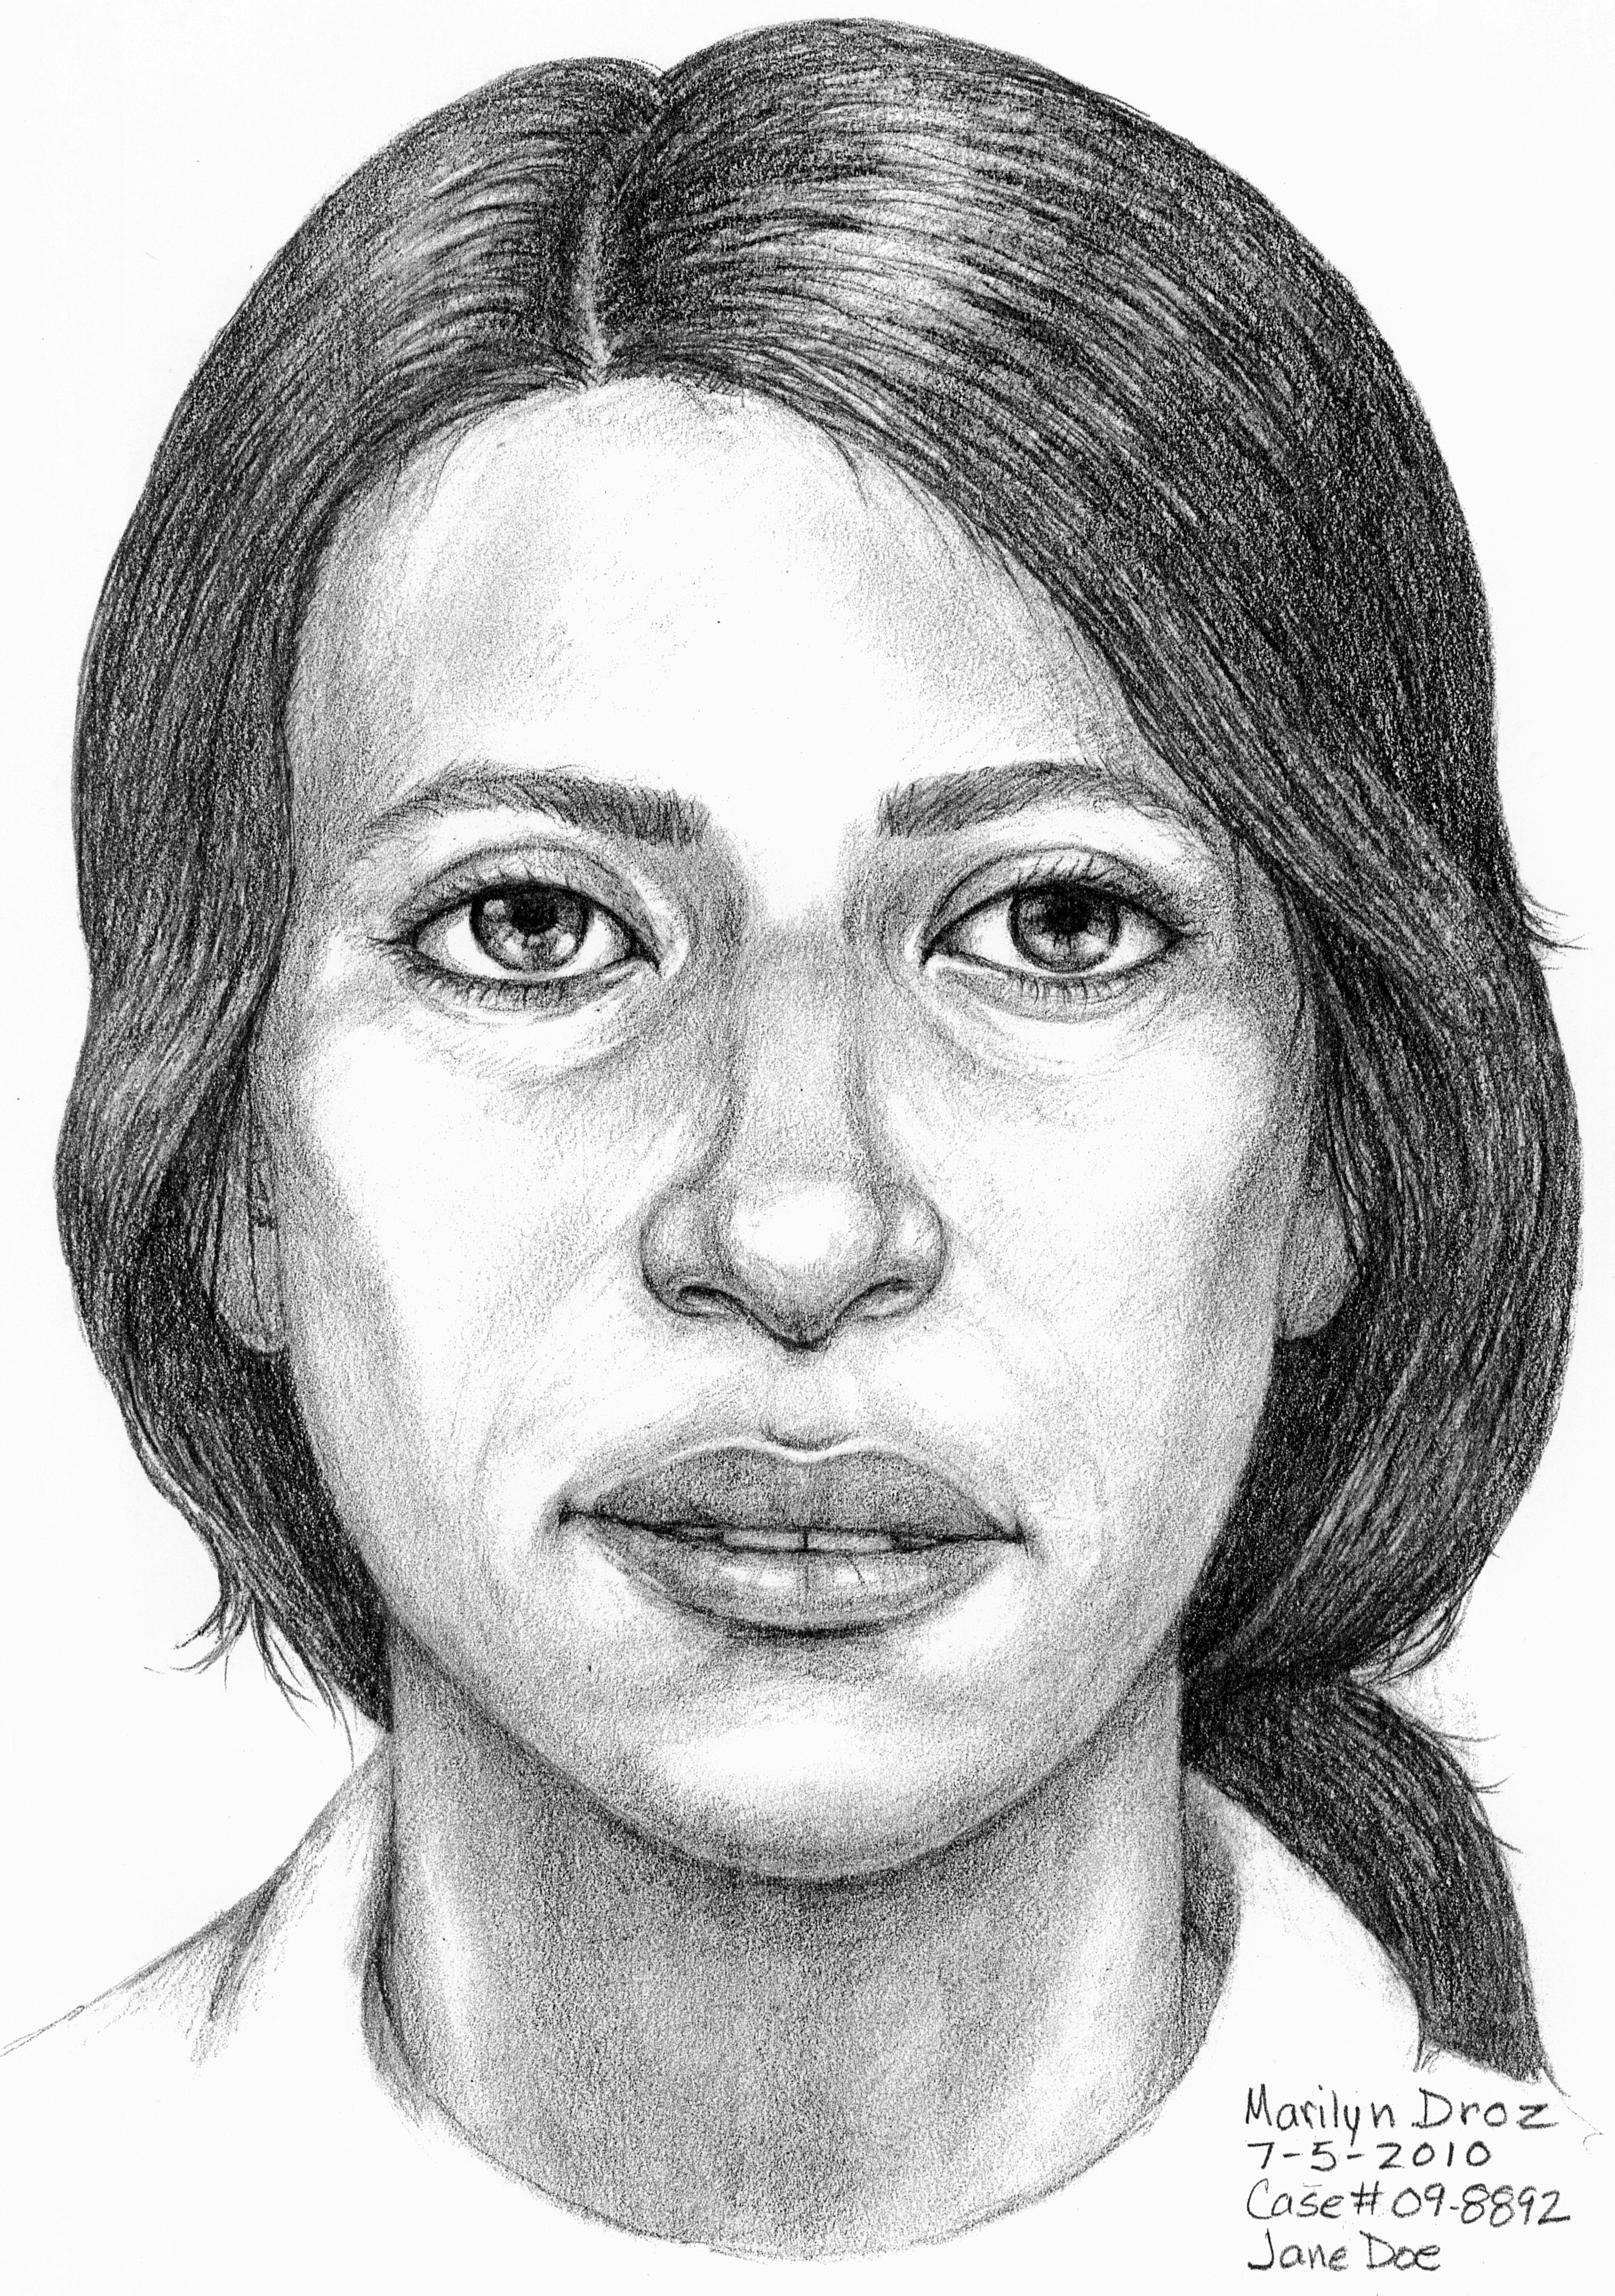 Los Angeles Jane Doe (December 2009)